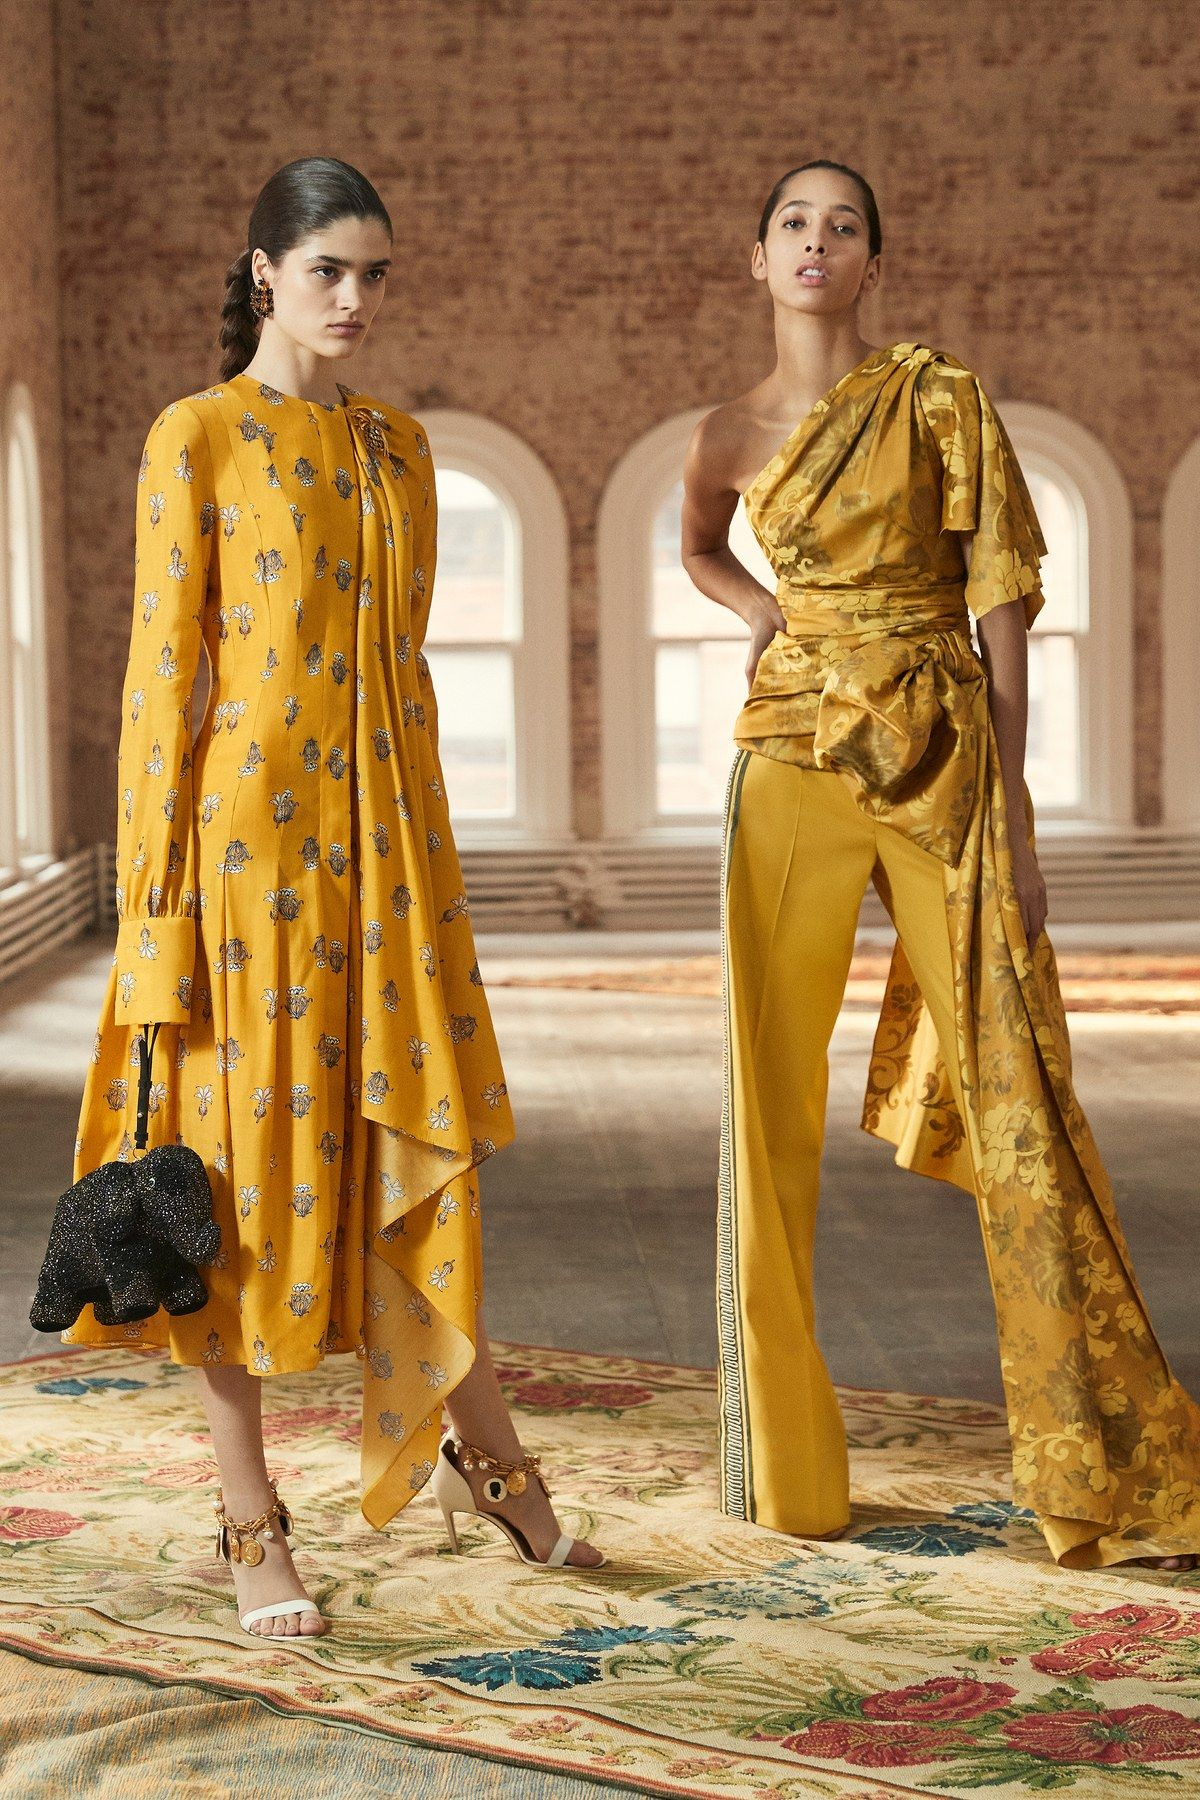 Oscar de la Renta Pre-Fall 2019 Fashion Show #fall2019fashiontrends